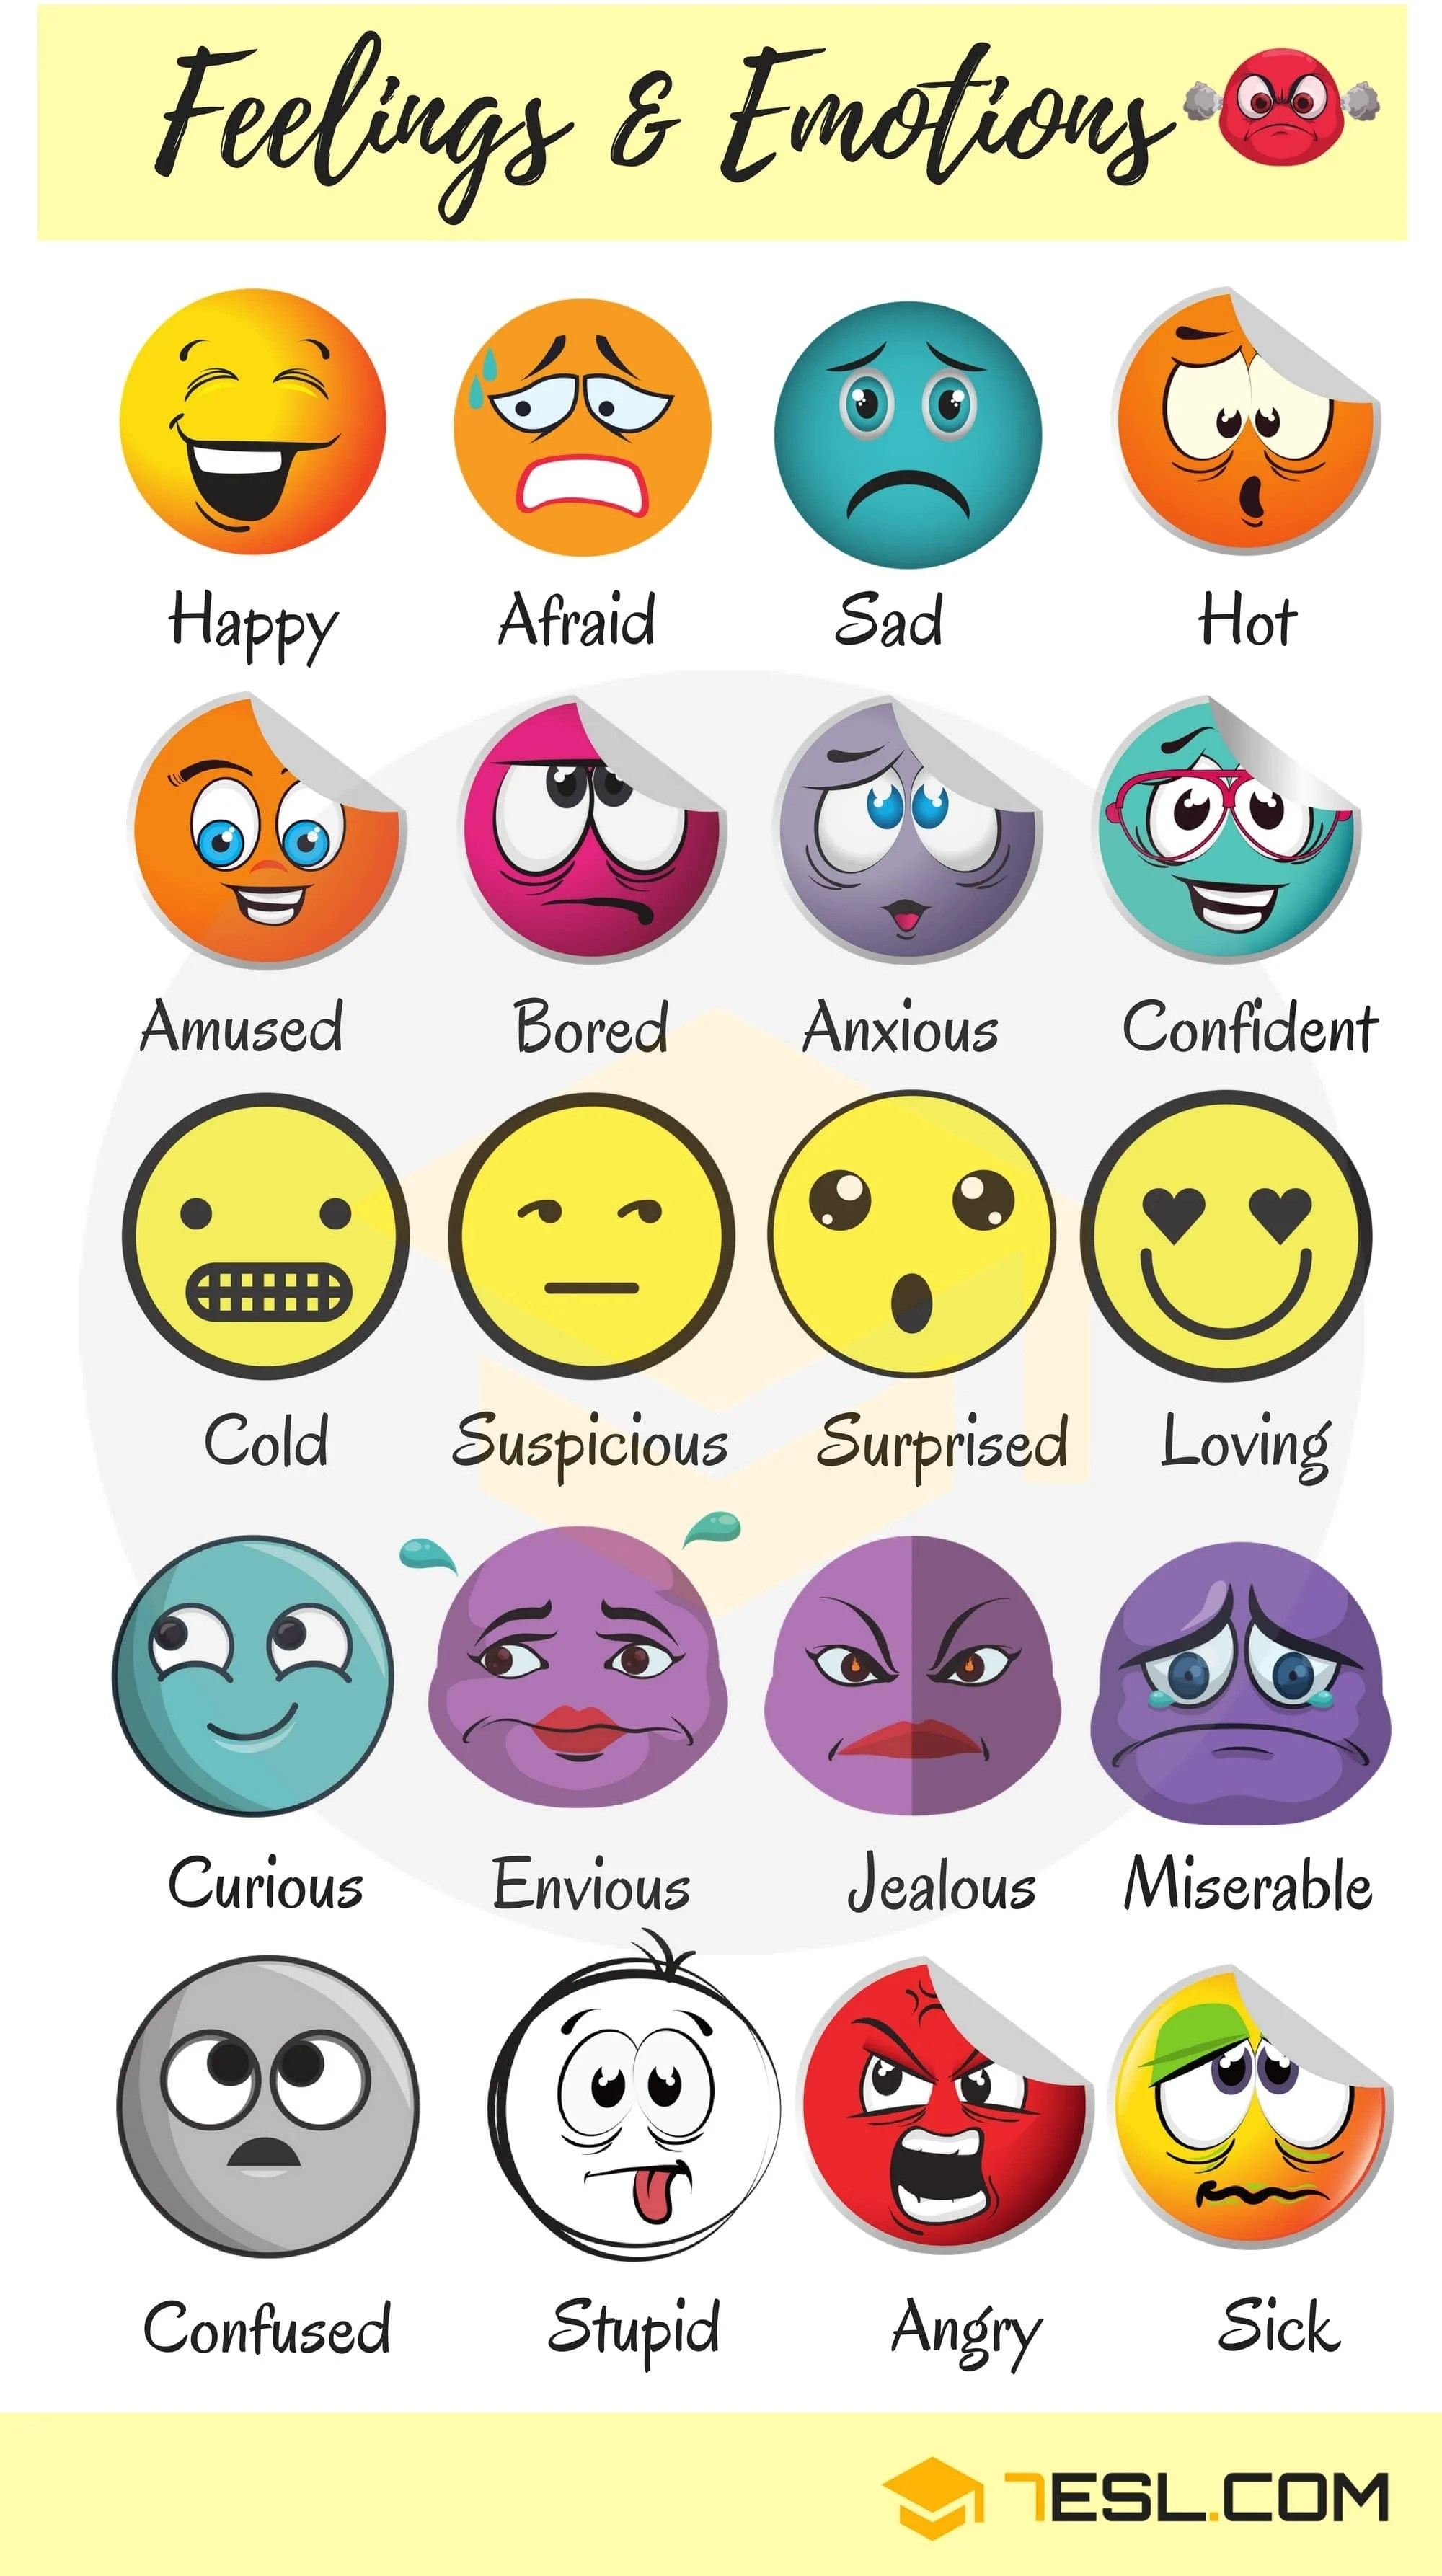 List Of Useful Adjectives To Describe Feelings And Emotions